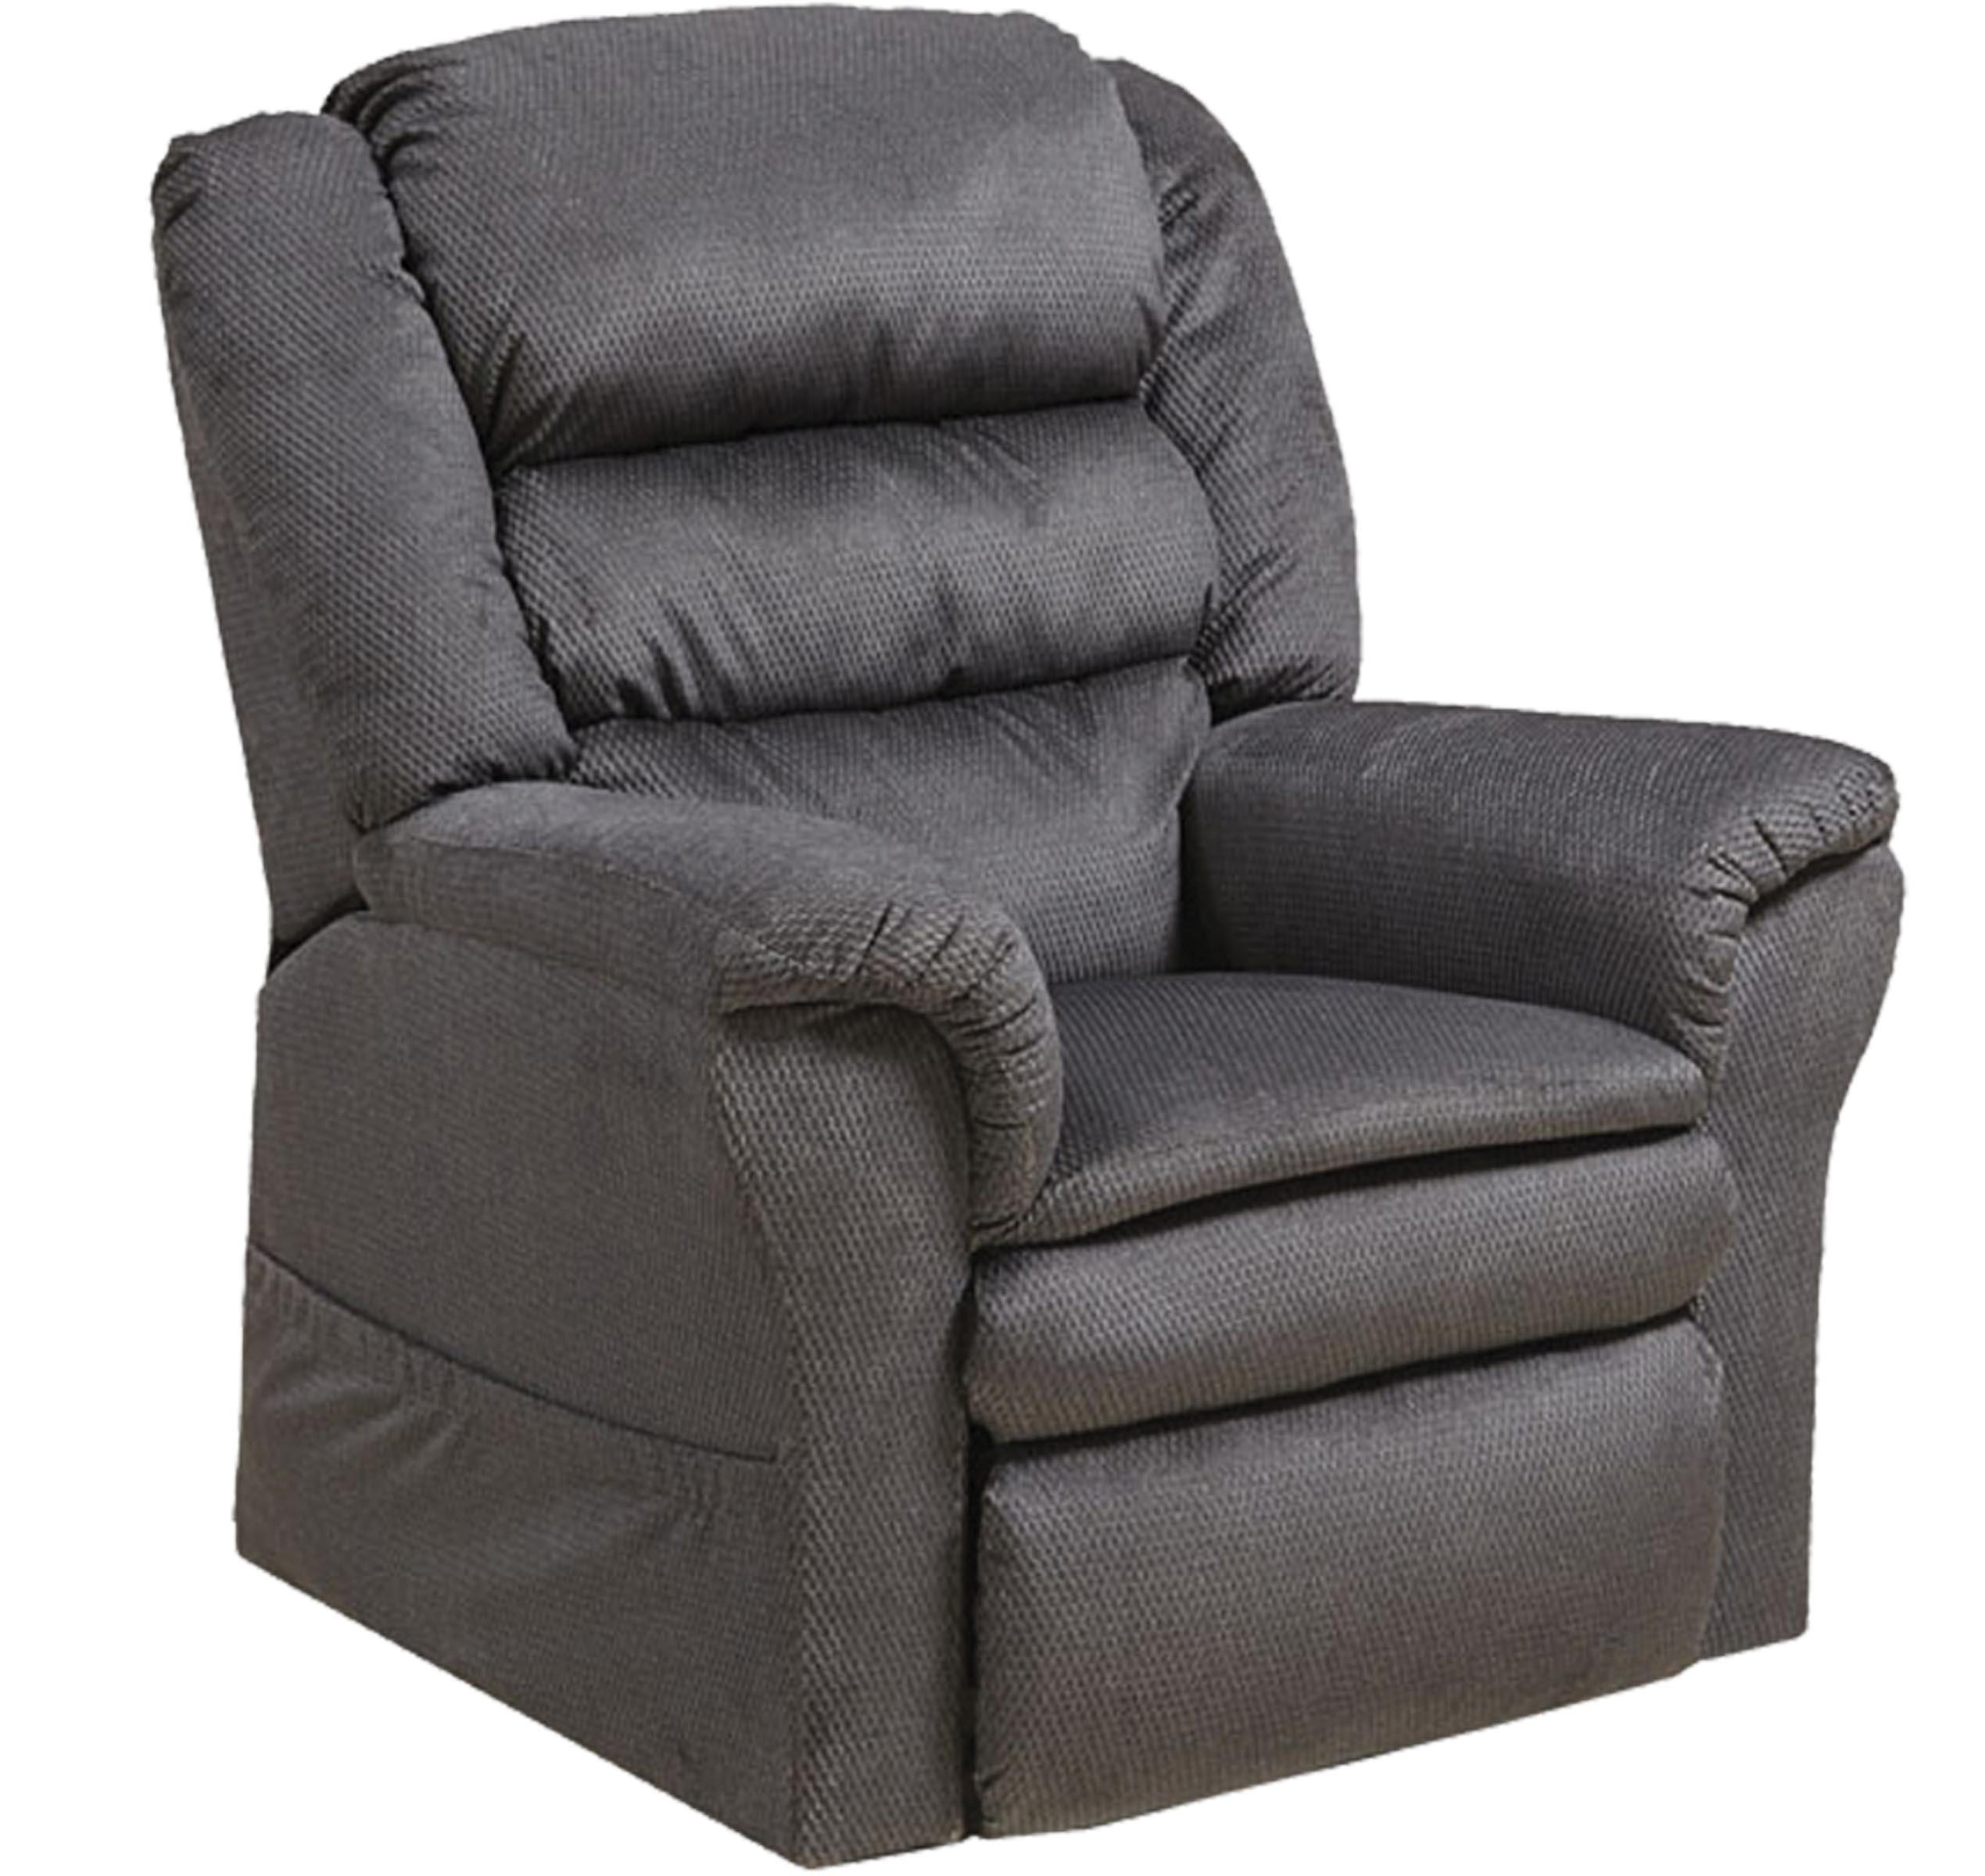 Preston Power Lift Recliner with Pillowtop Seat by Catnapper at EFO Furniture Outlet